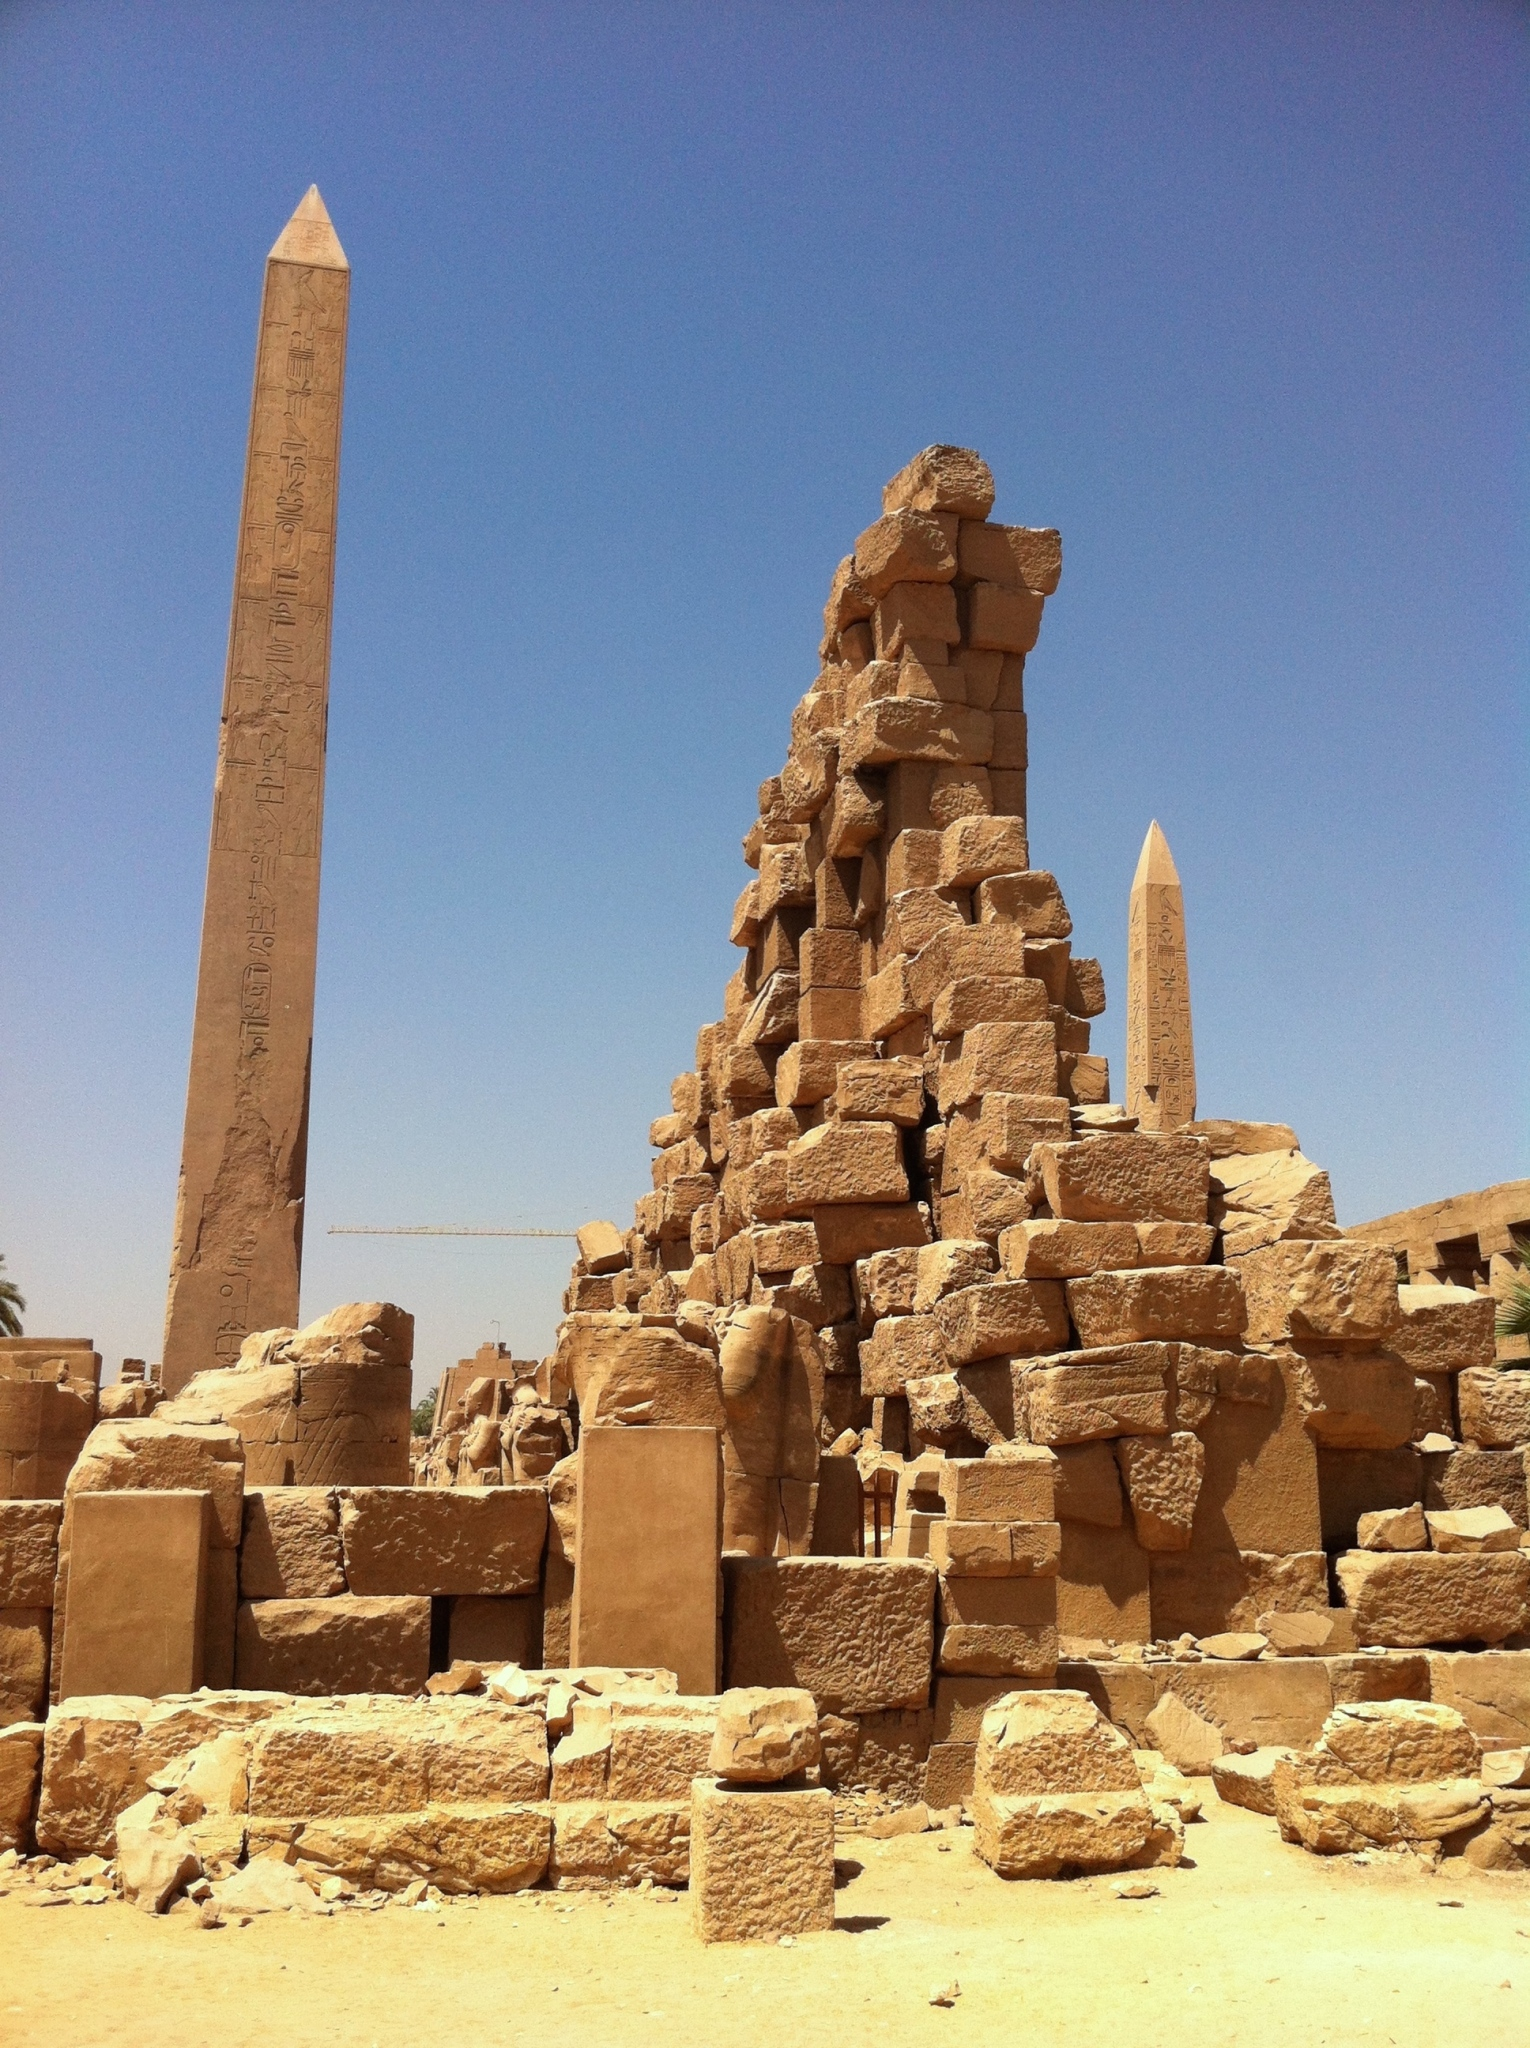 Egyptian obelisks from the reigns of Hatshepsut (left) and Thutmose III (right) from Karnak Temple (authors' photo)